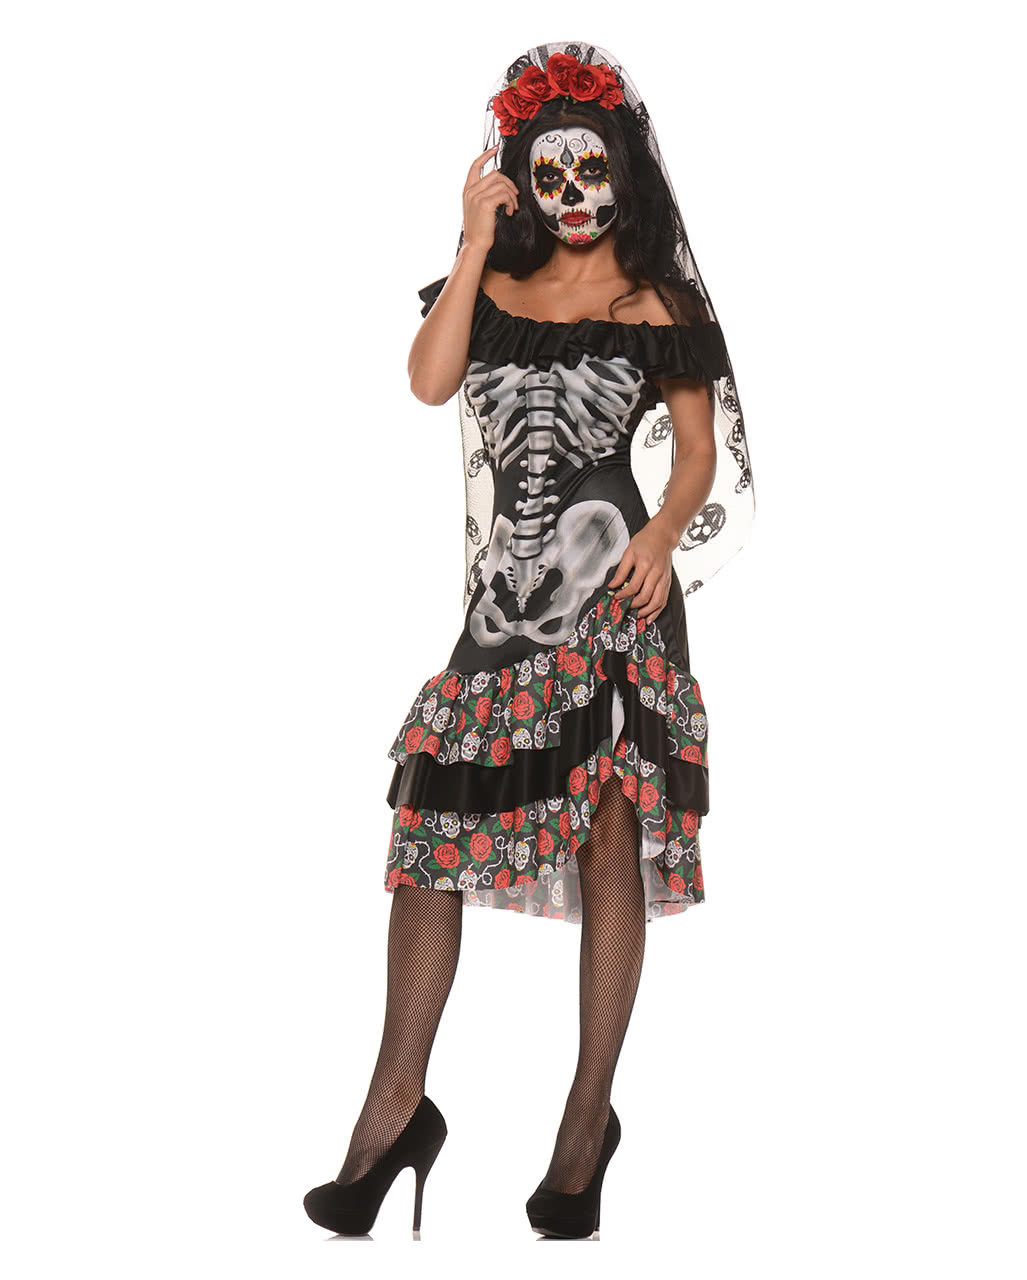 queen of the dead costume sugar skull costume horror. Black Bedroom Furniture Sets. Home Design Ideas